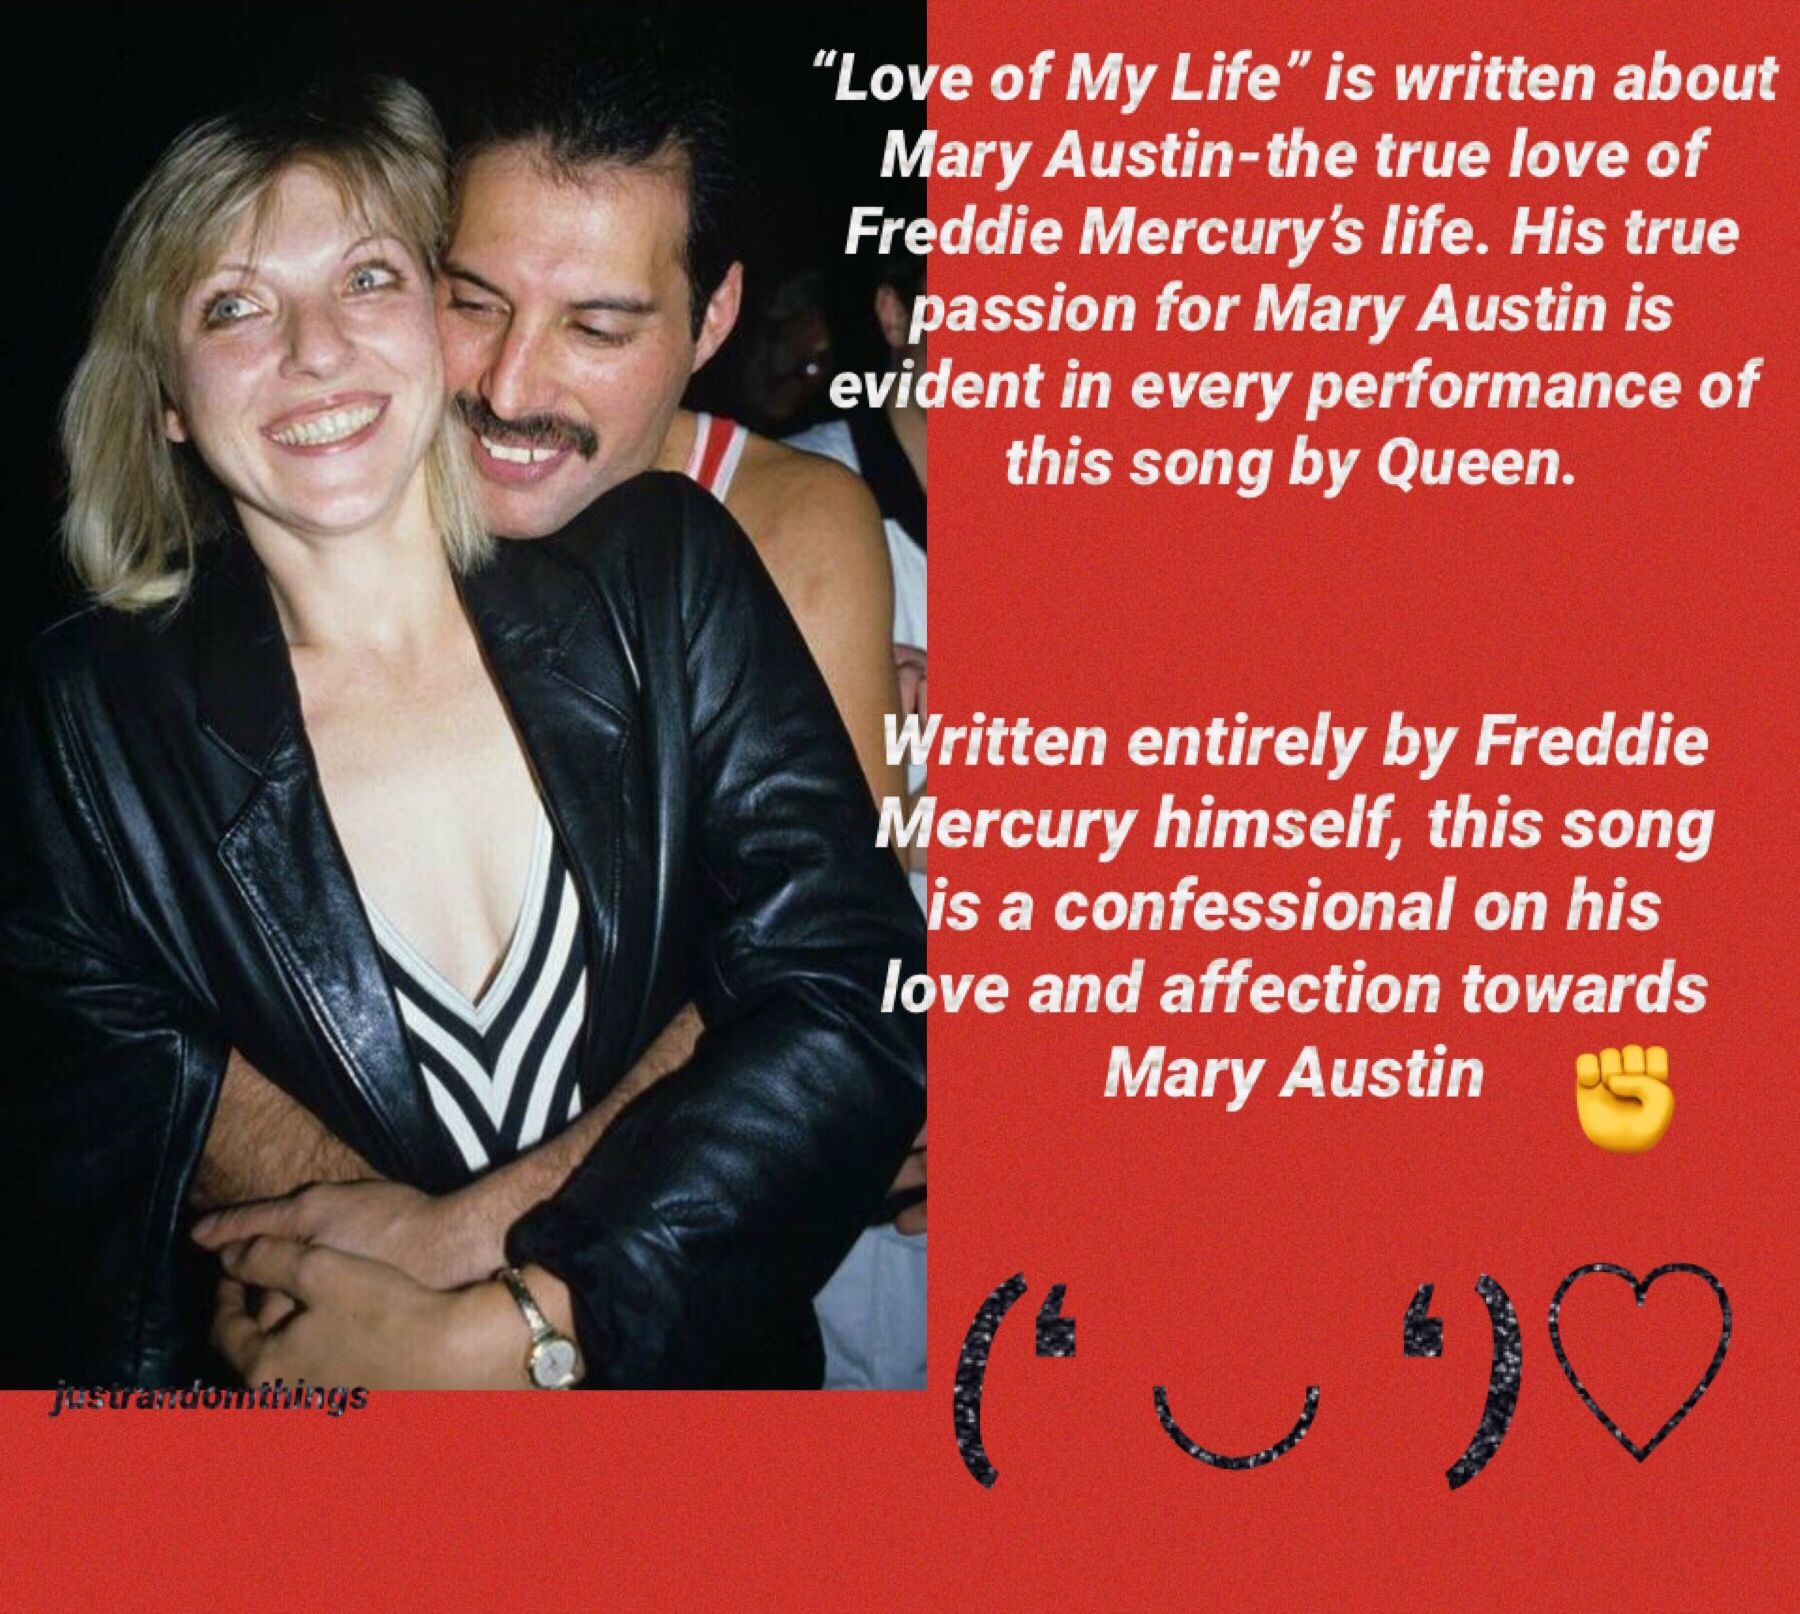 freddie mercury and mary austin freddie mercury quotes mary austin freddie mercury freddie mercury and mary austin